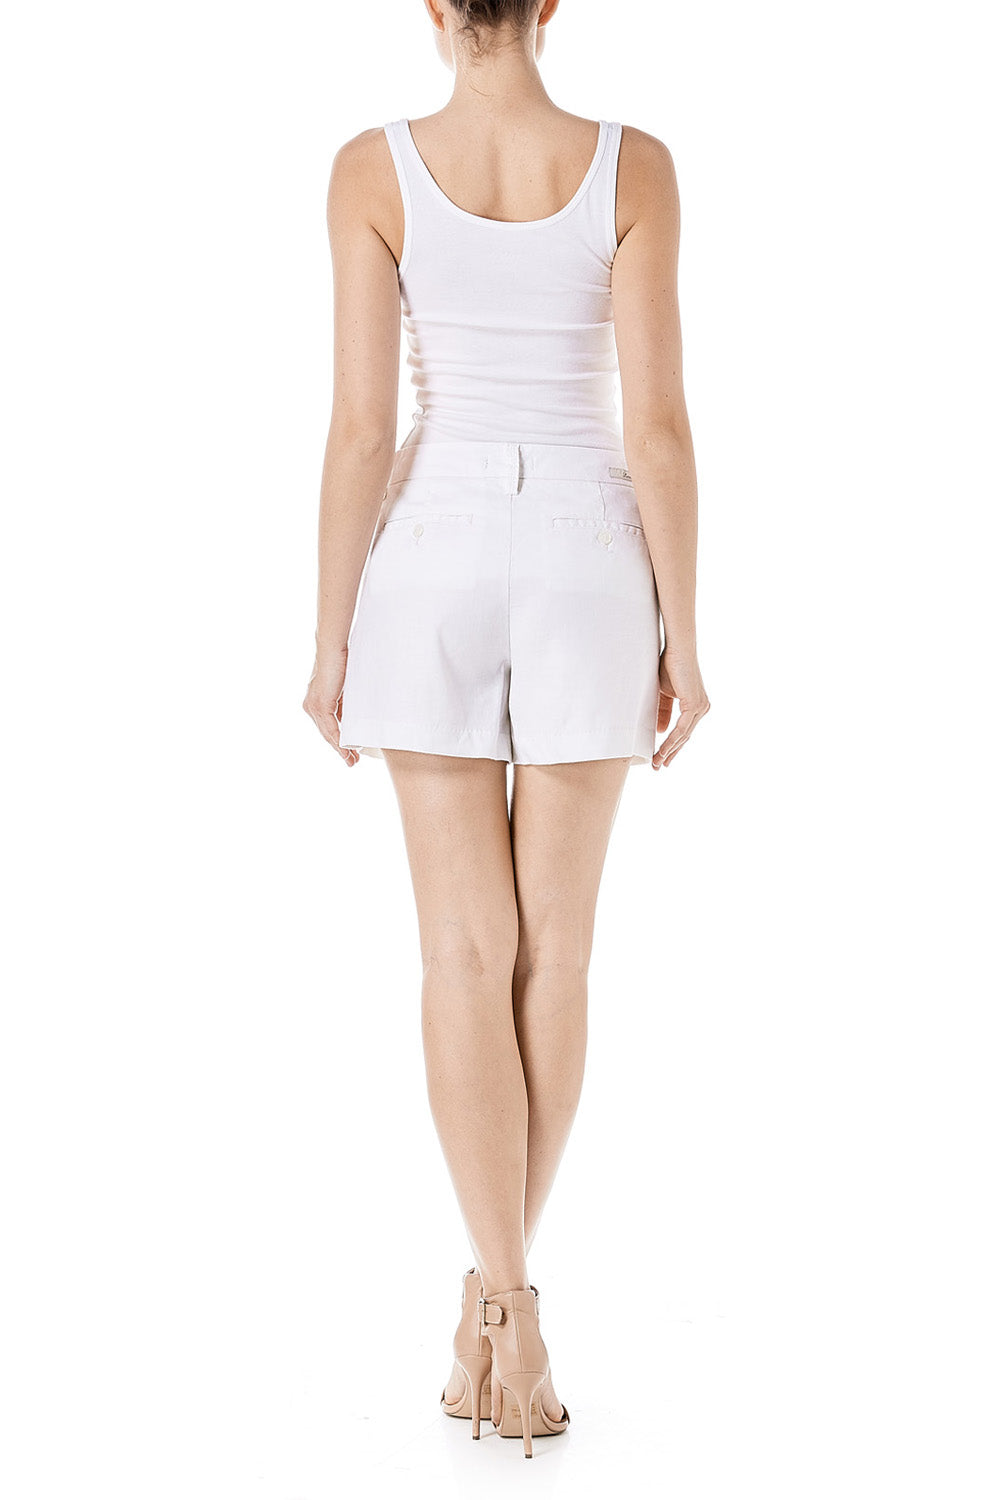 Optic White Cassandra Short